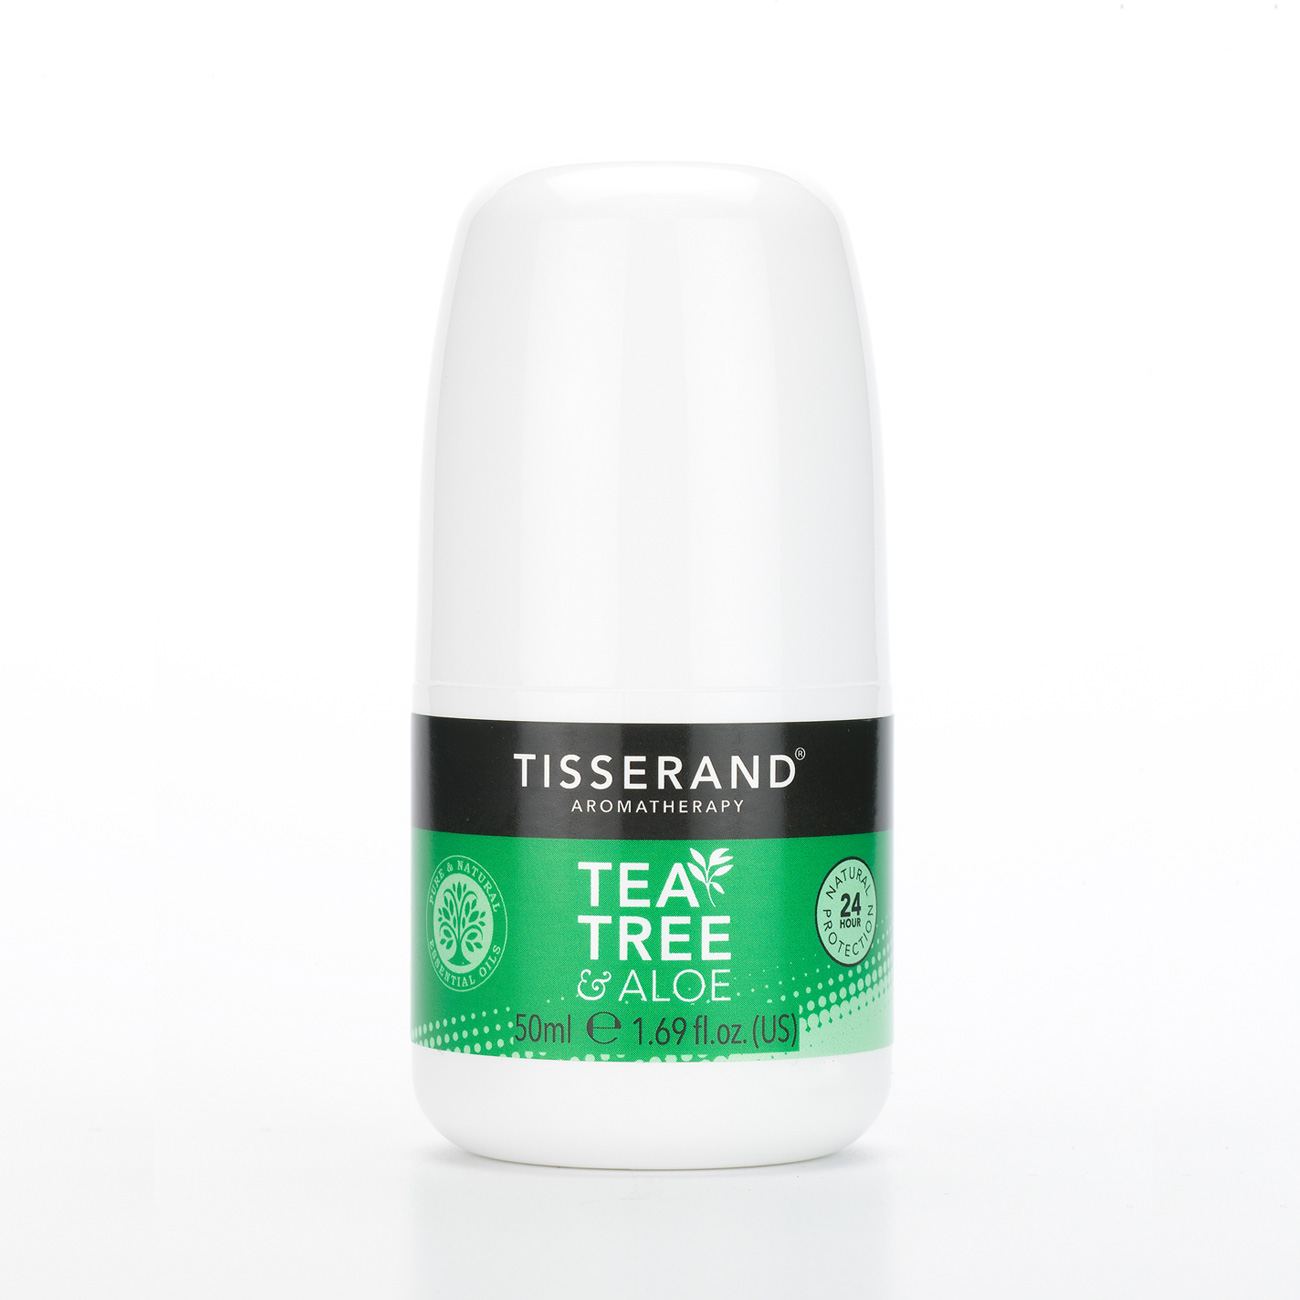 【茶樹蘆薈體香劑】TEA TREE & ALOE 24 HOUR DEODORANT